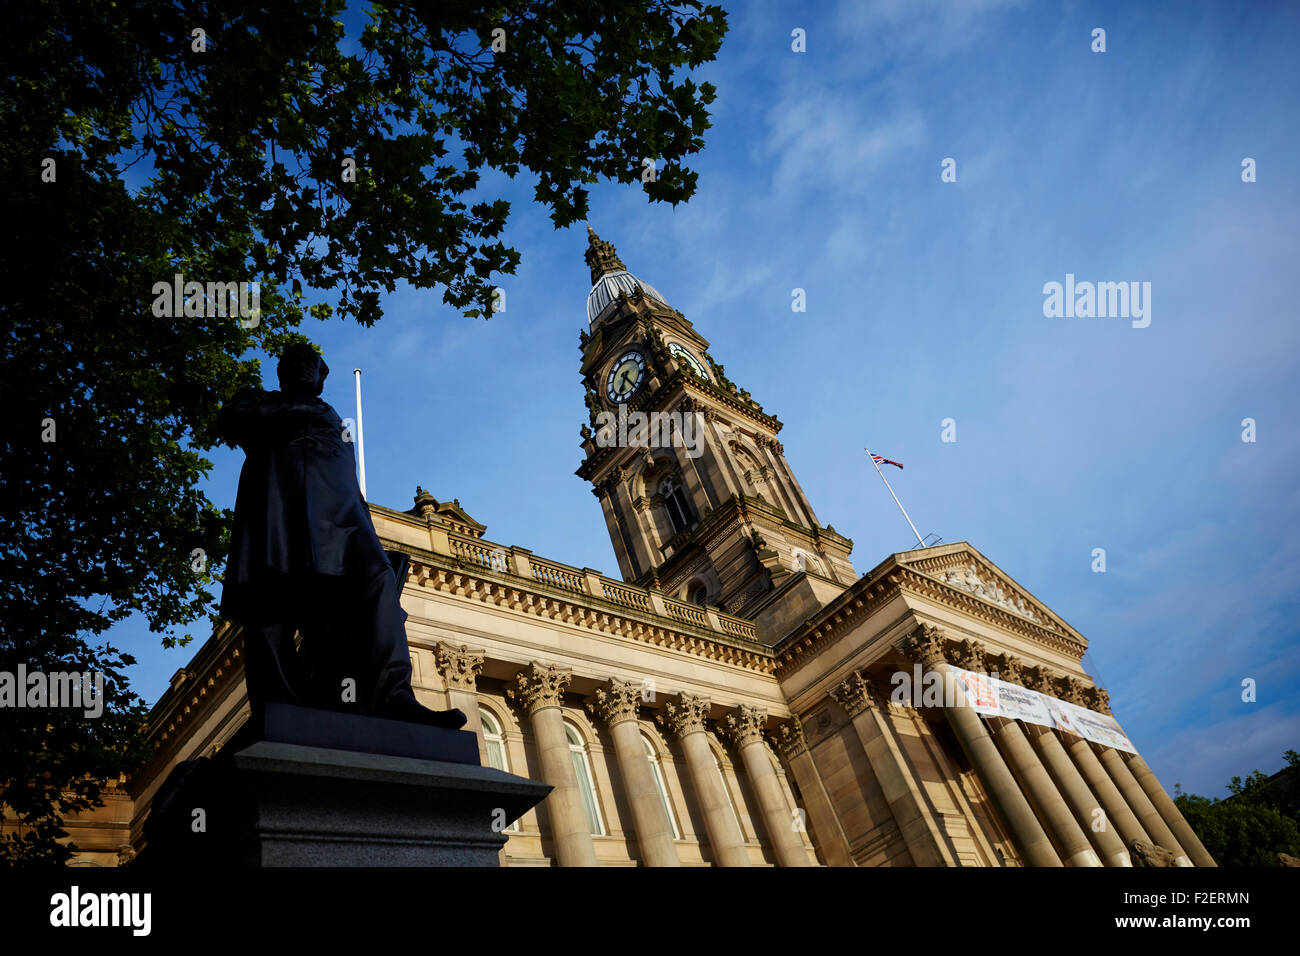 Bolton Town Hall facing Victoria Square in Bolton, Greater Manchester, England, was built between 1866 and 1873 - Stock Image